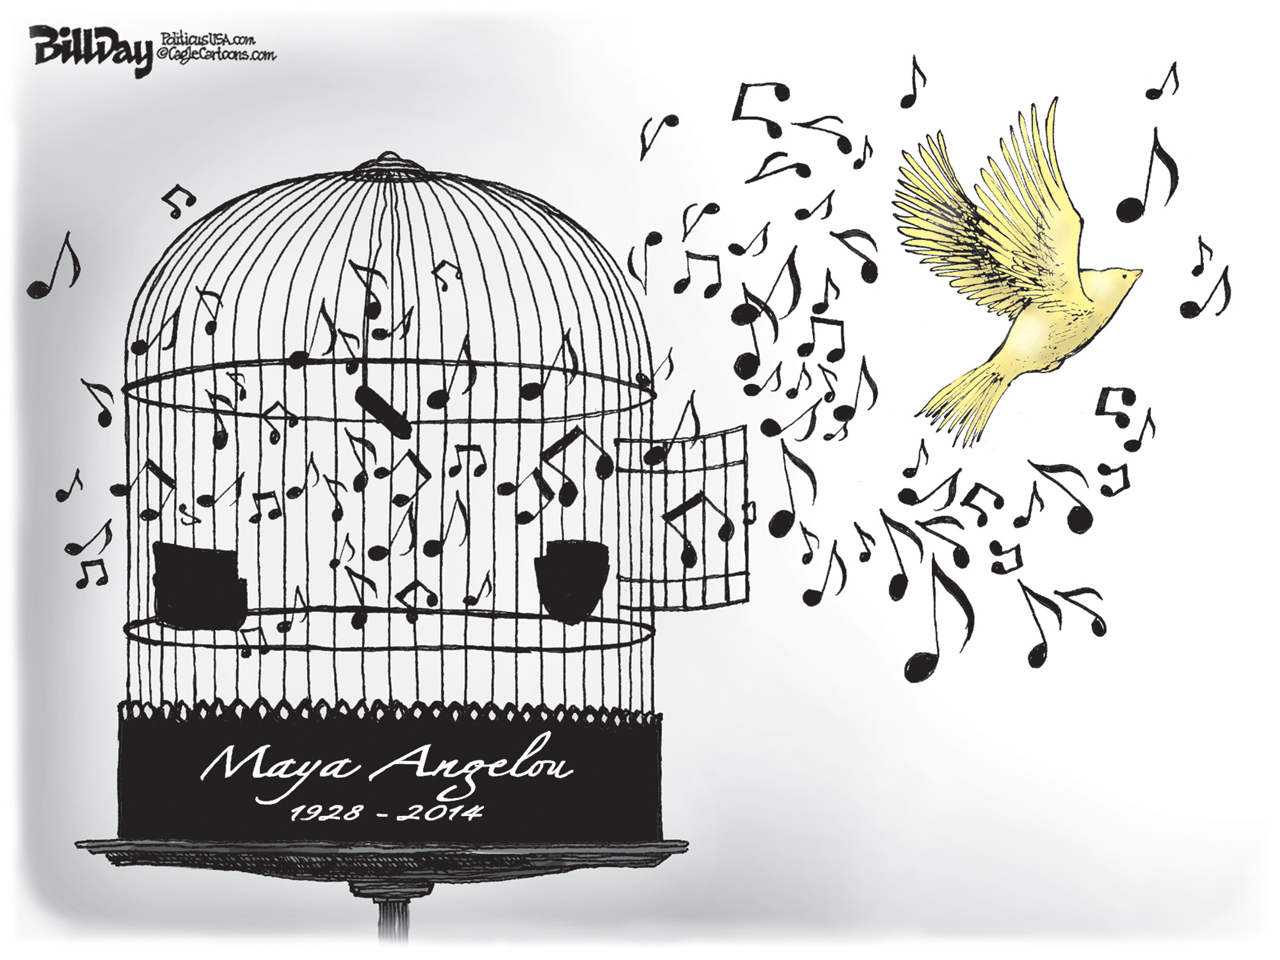 I Know Why The Caged Bird Sings Make Your Own Passover Haggadah